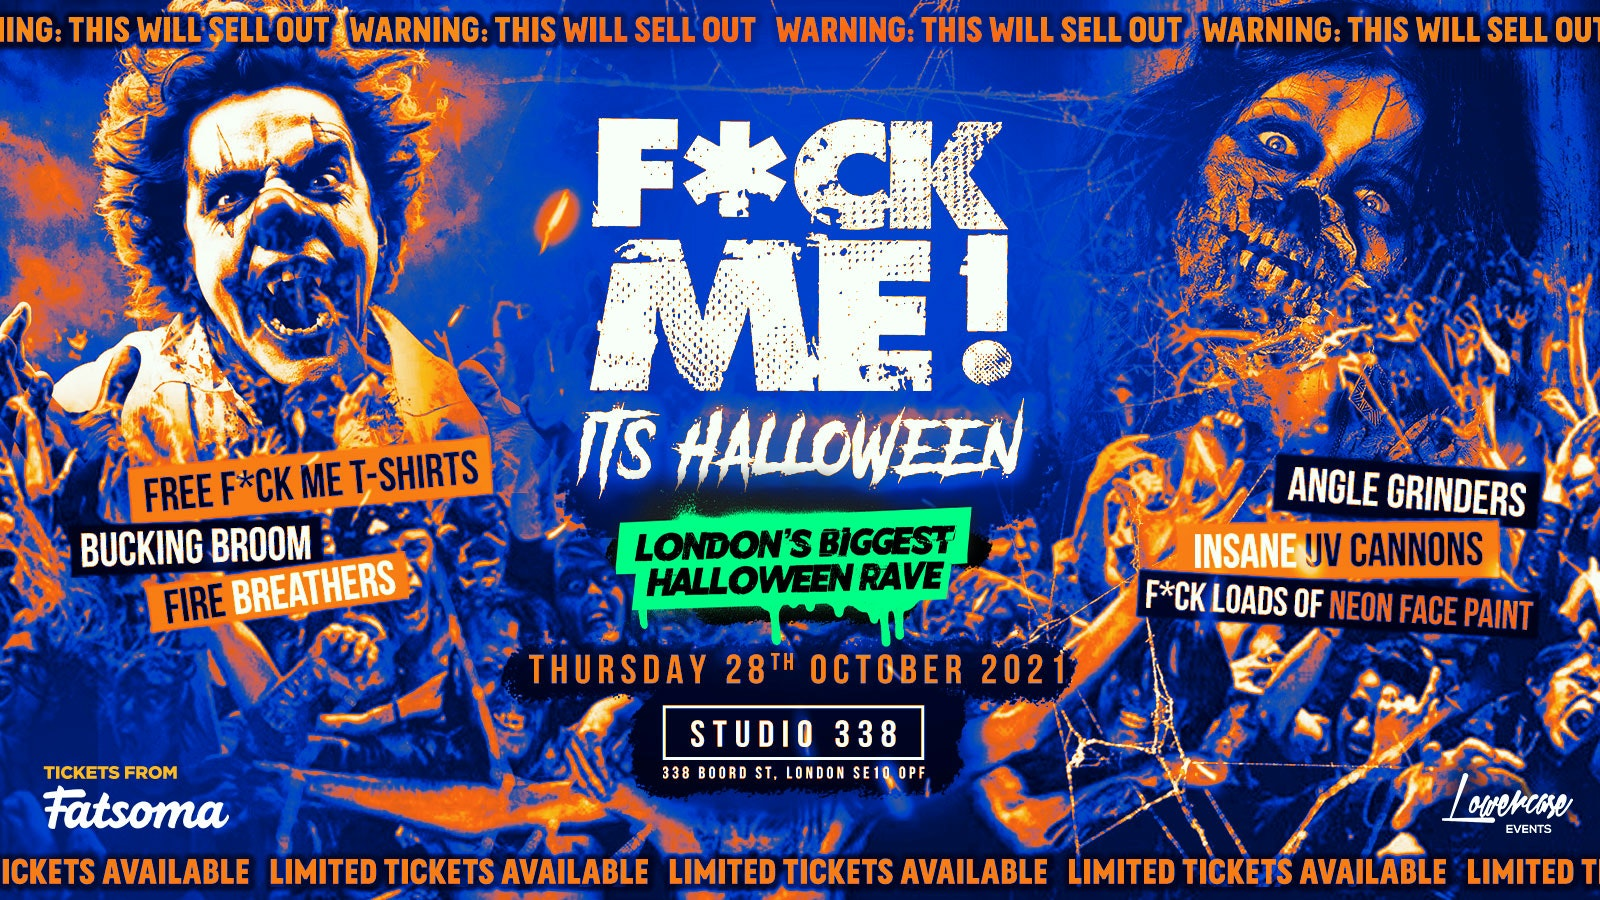 F*CK ME IT'S HALLOWEEN! ⚠️THIS EVENT WILL SELL OUT⚠️